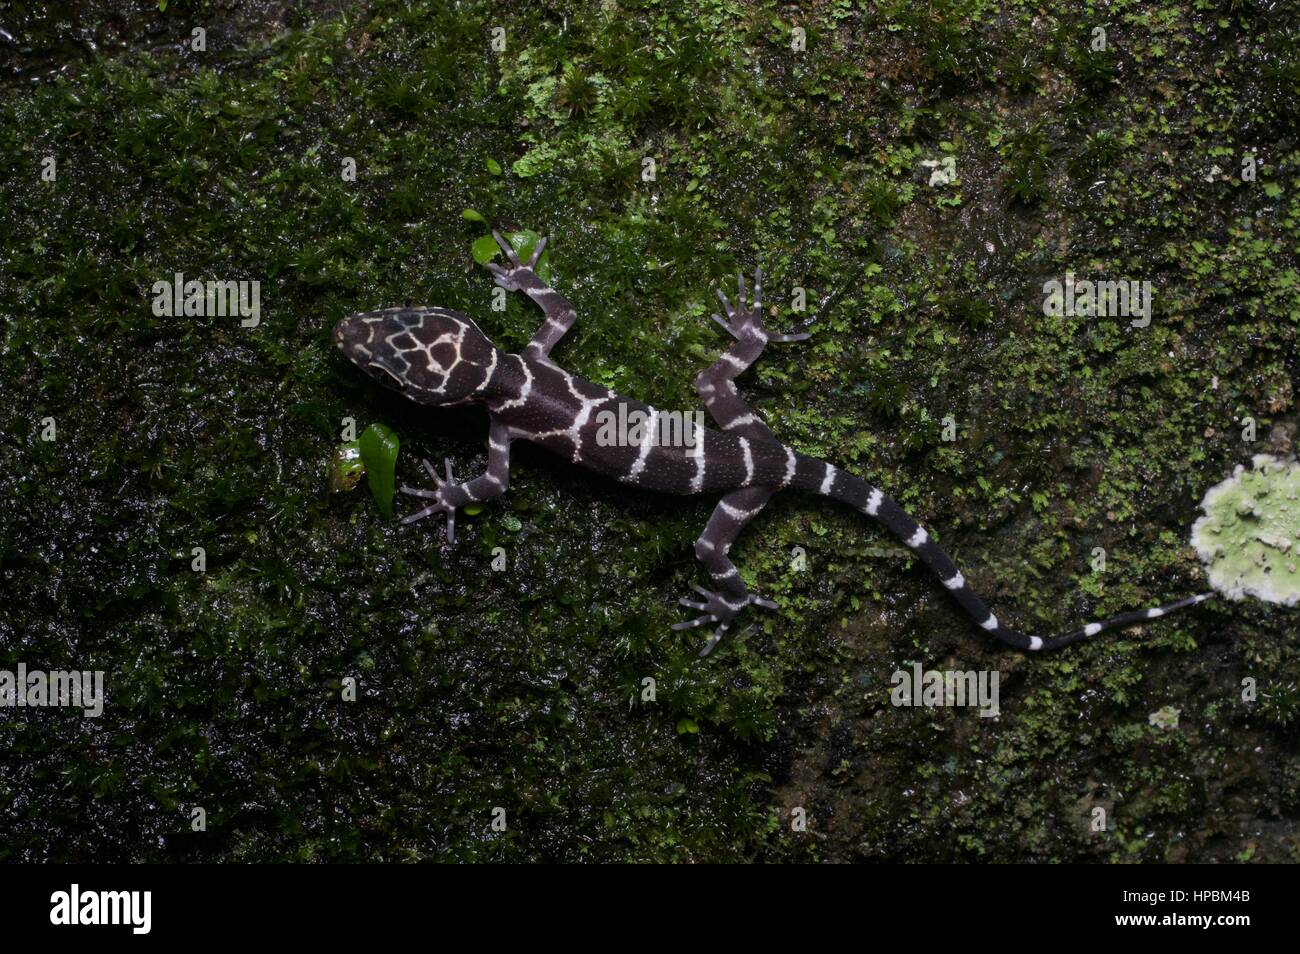 A juvenile Peter's Bent-toed Gecko (Cyrtodactylus consobrinus) in the Malaysian rainforest at night - Stock Image